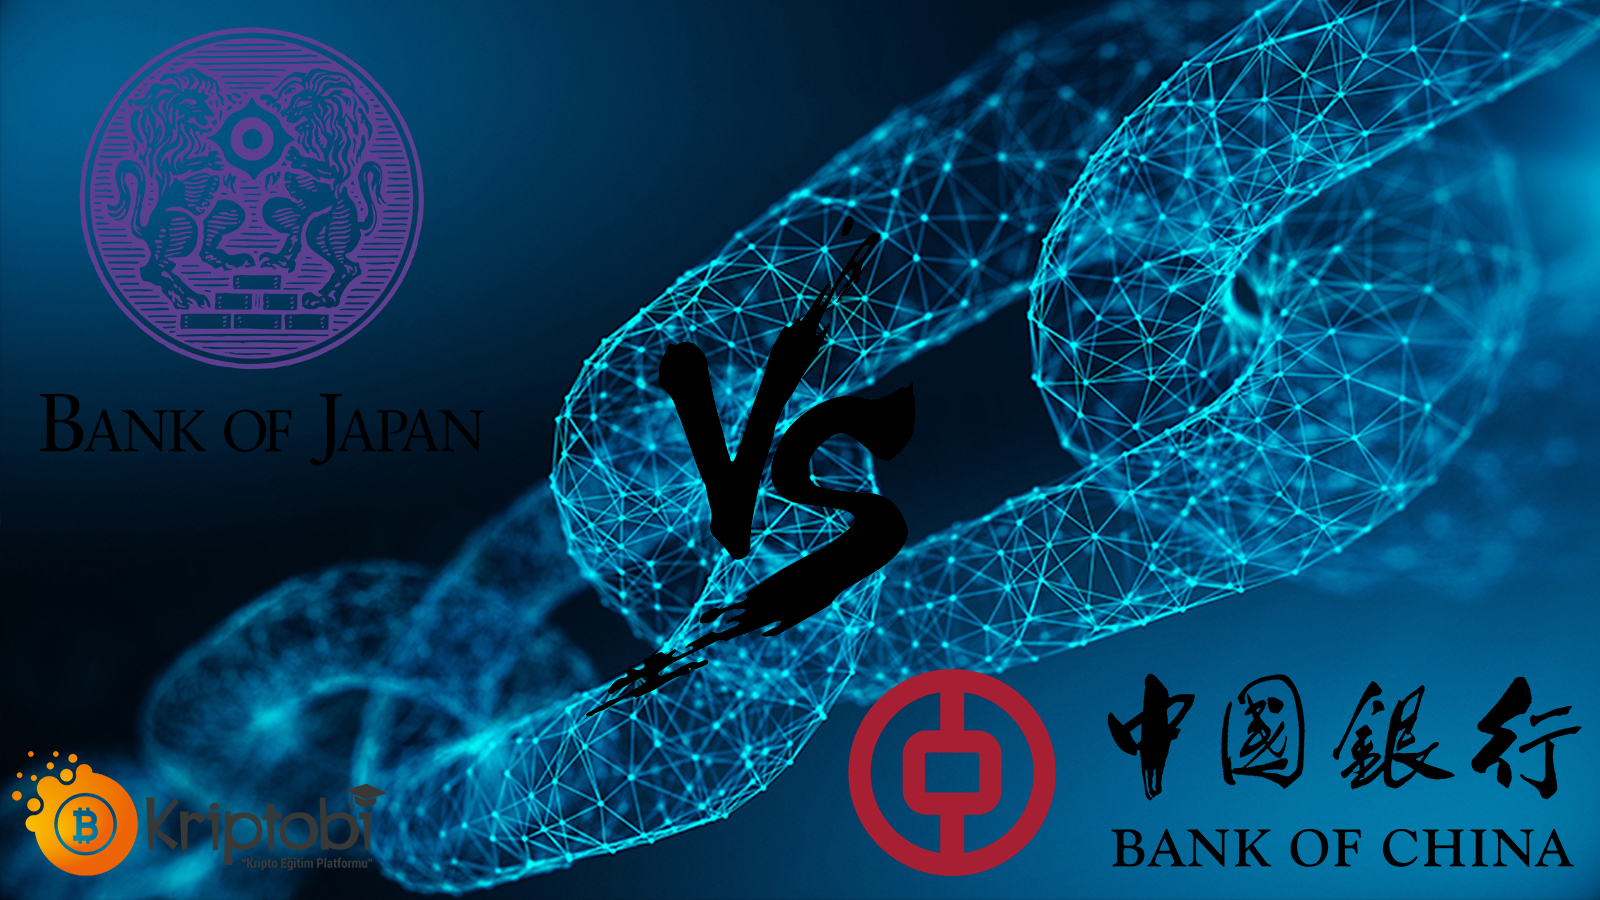 bank of japan and bank of china